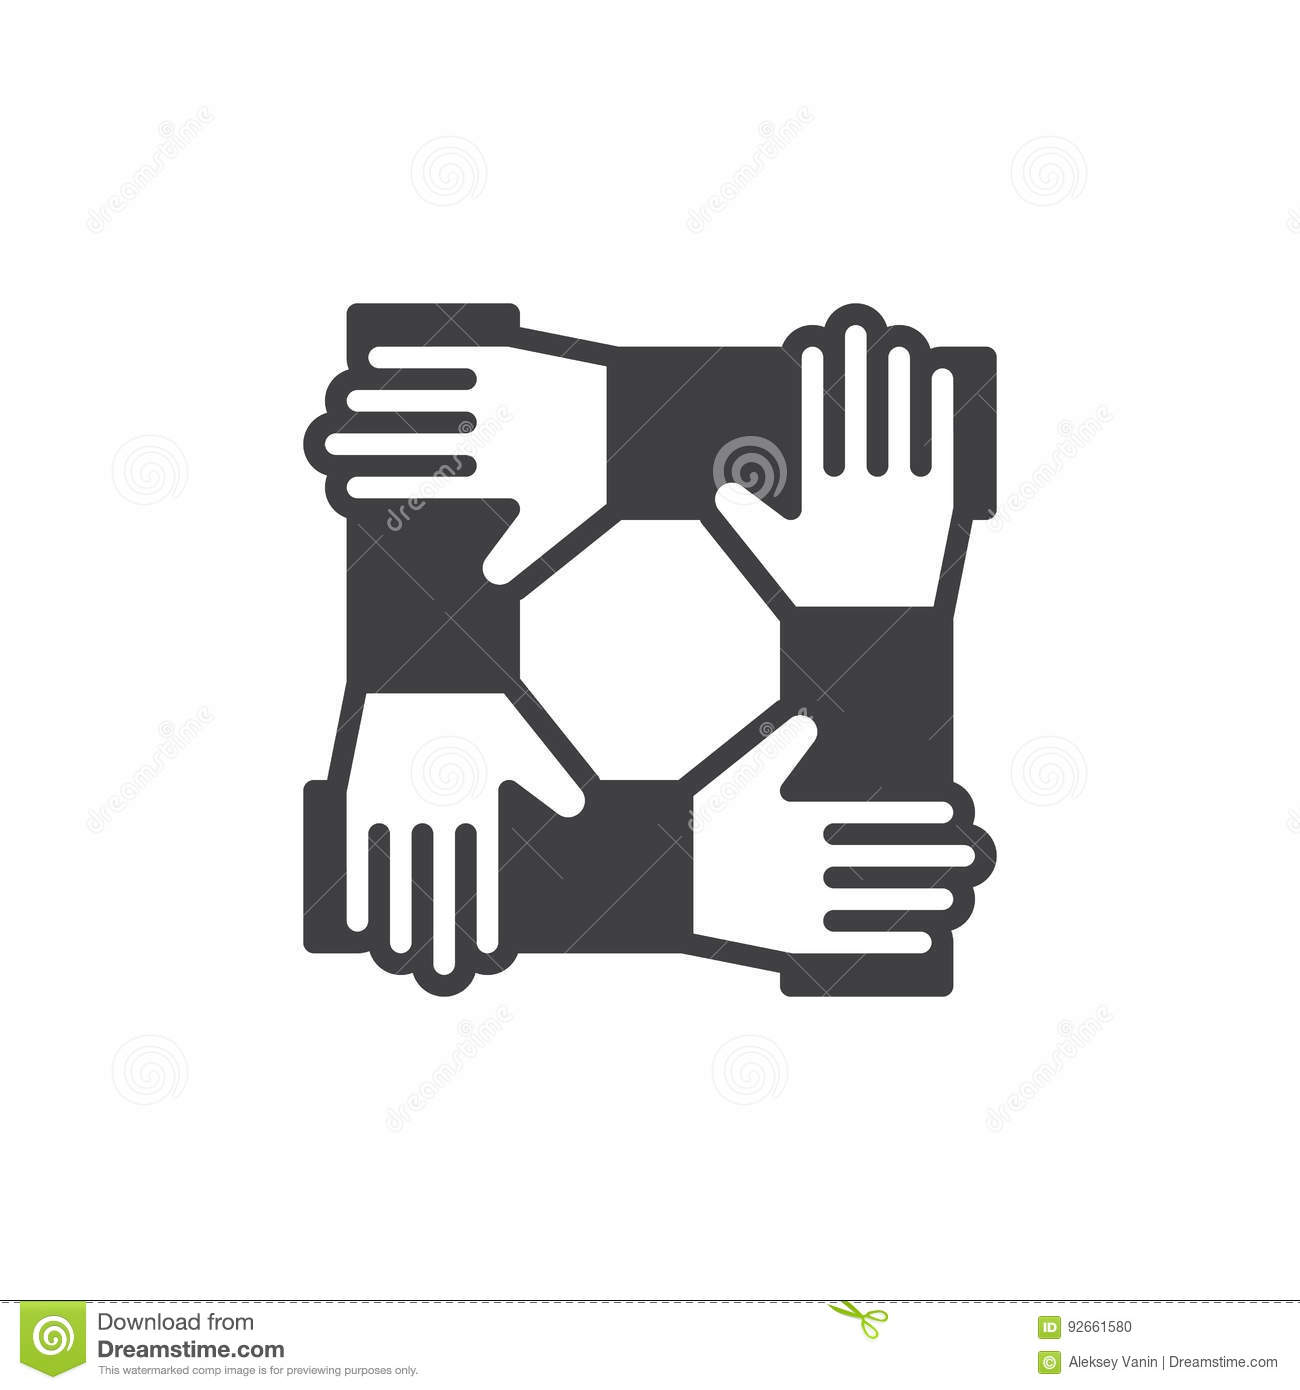 Teamwork Hands Logo Vector Illustration